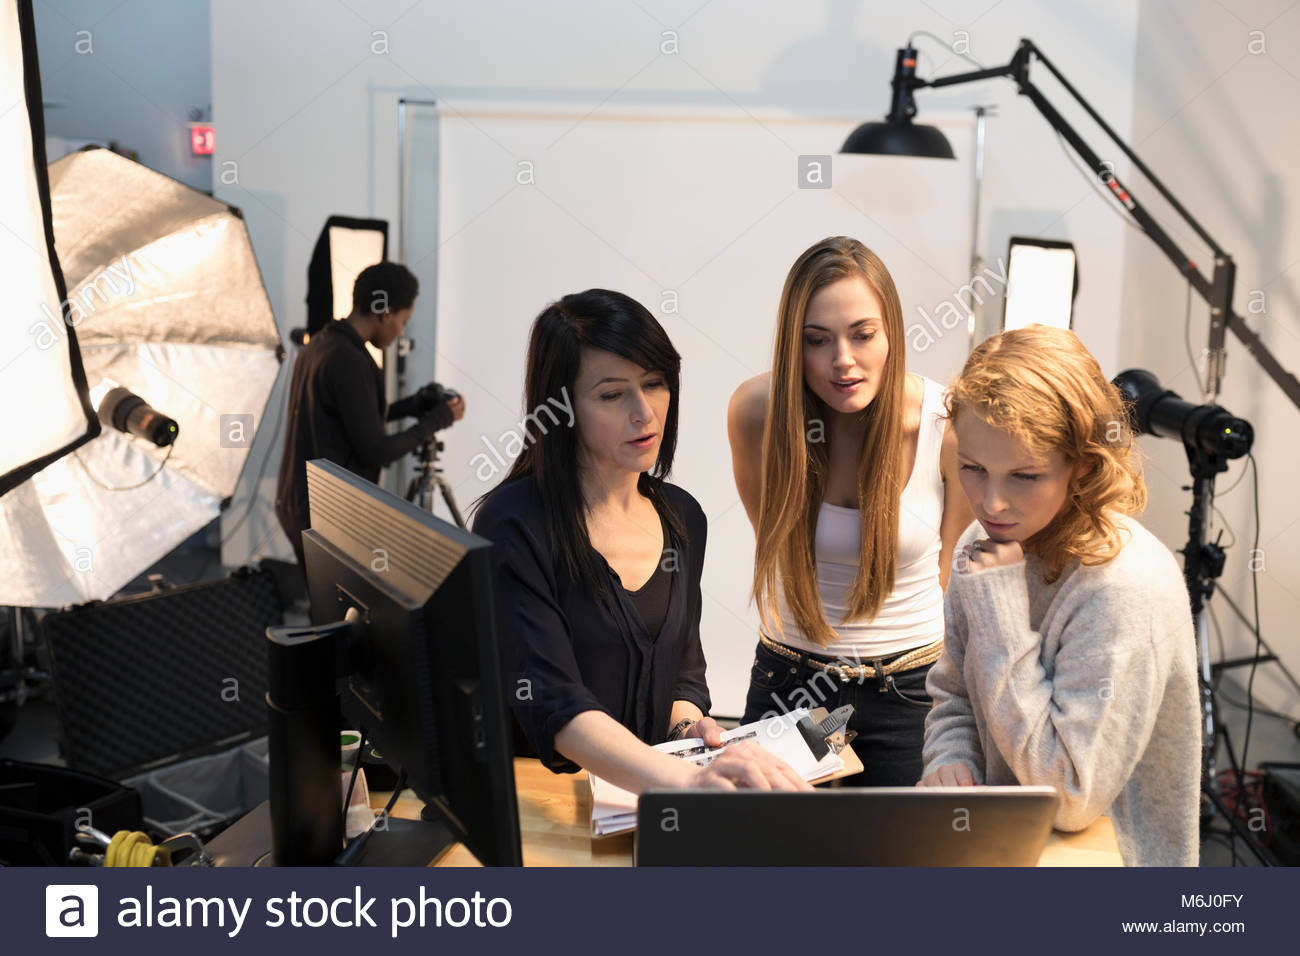 Female production assistants and model at laptop at photo shoot in studio - Stock Image